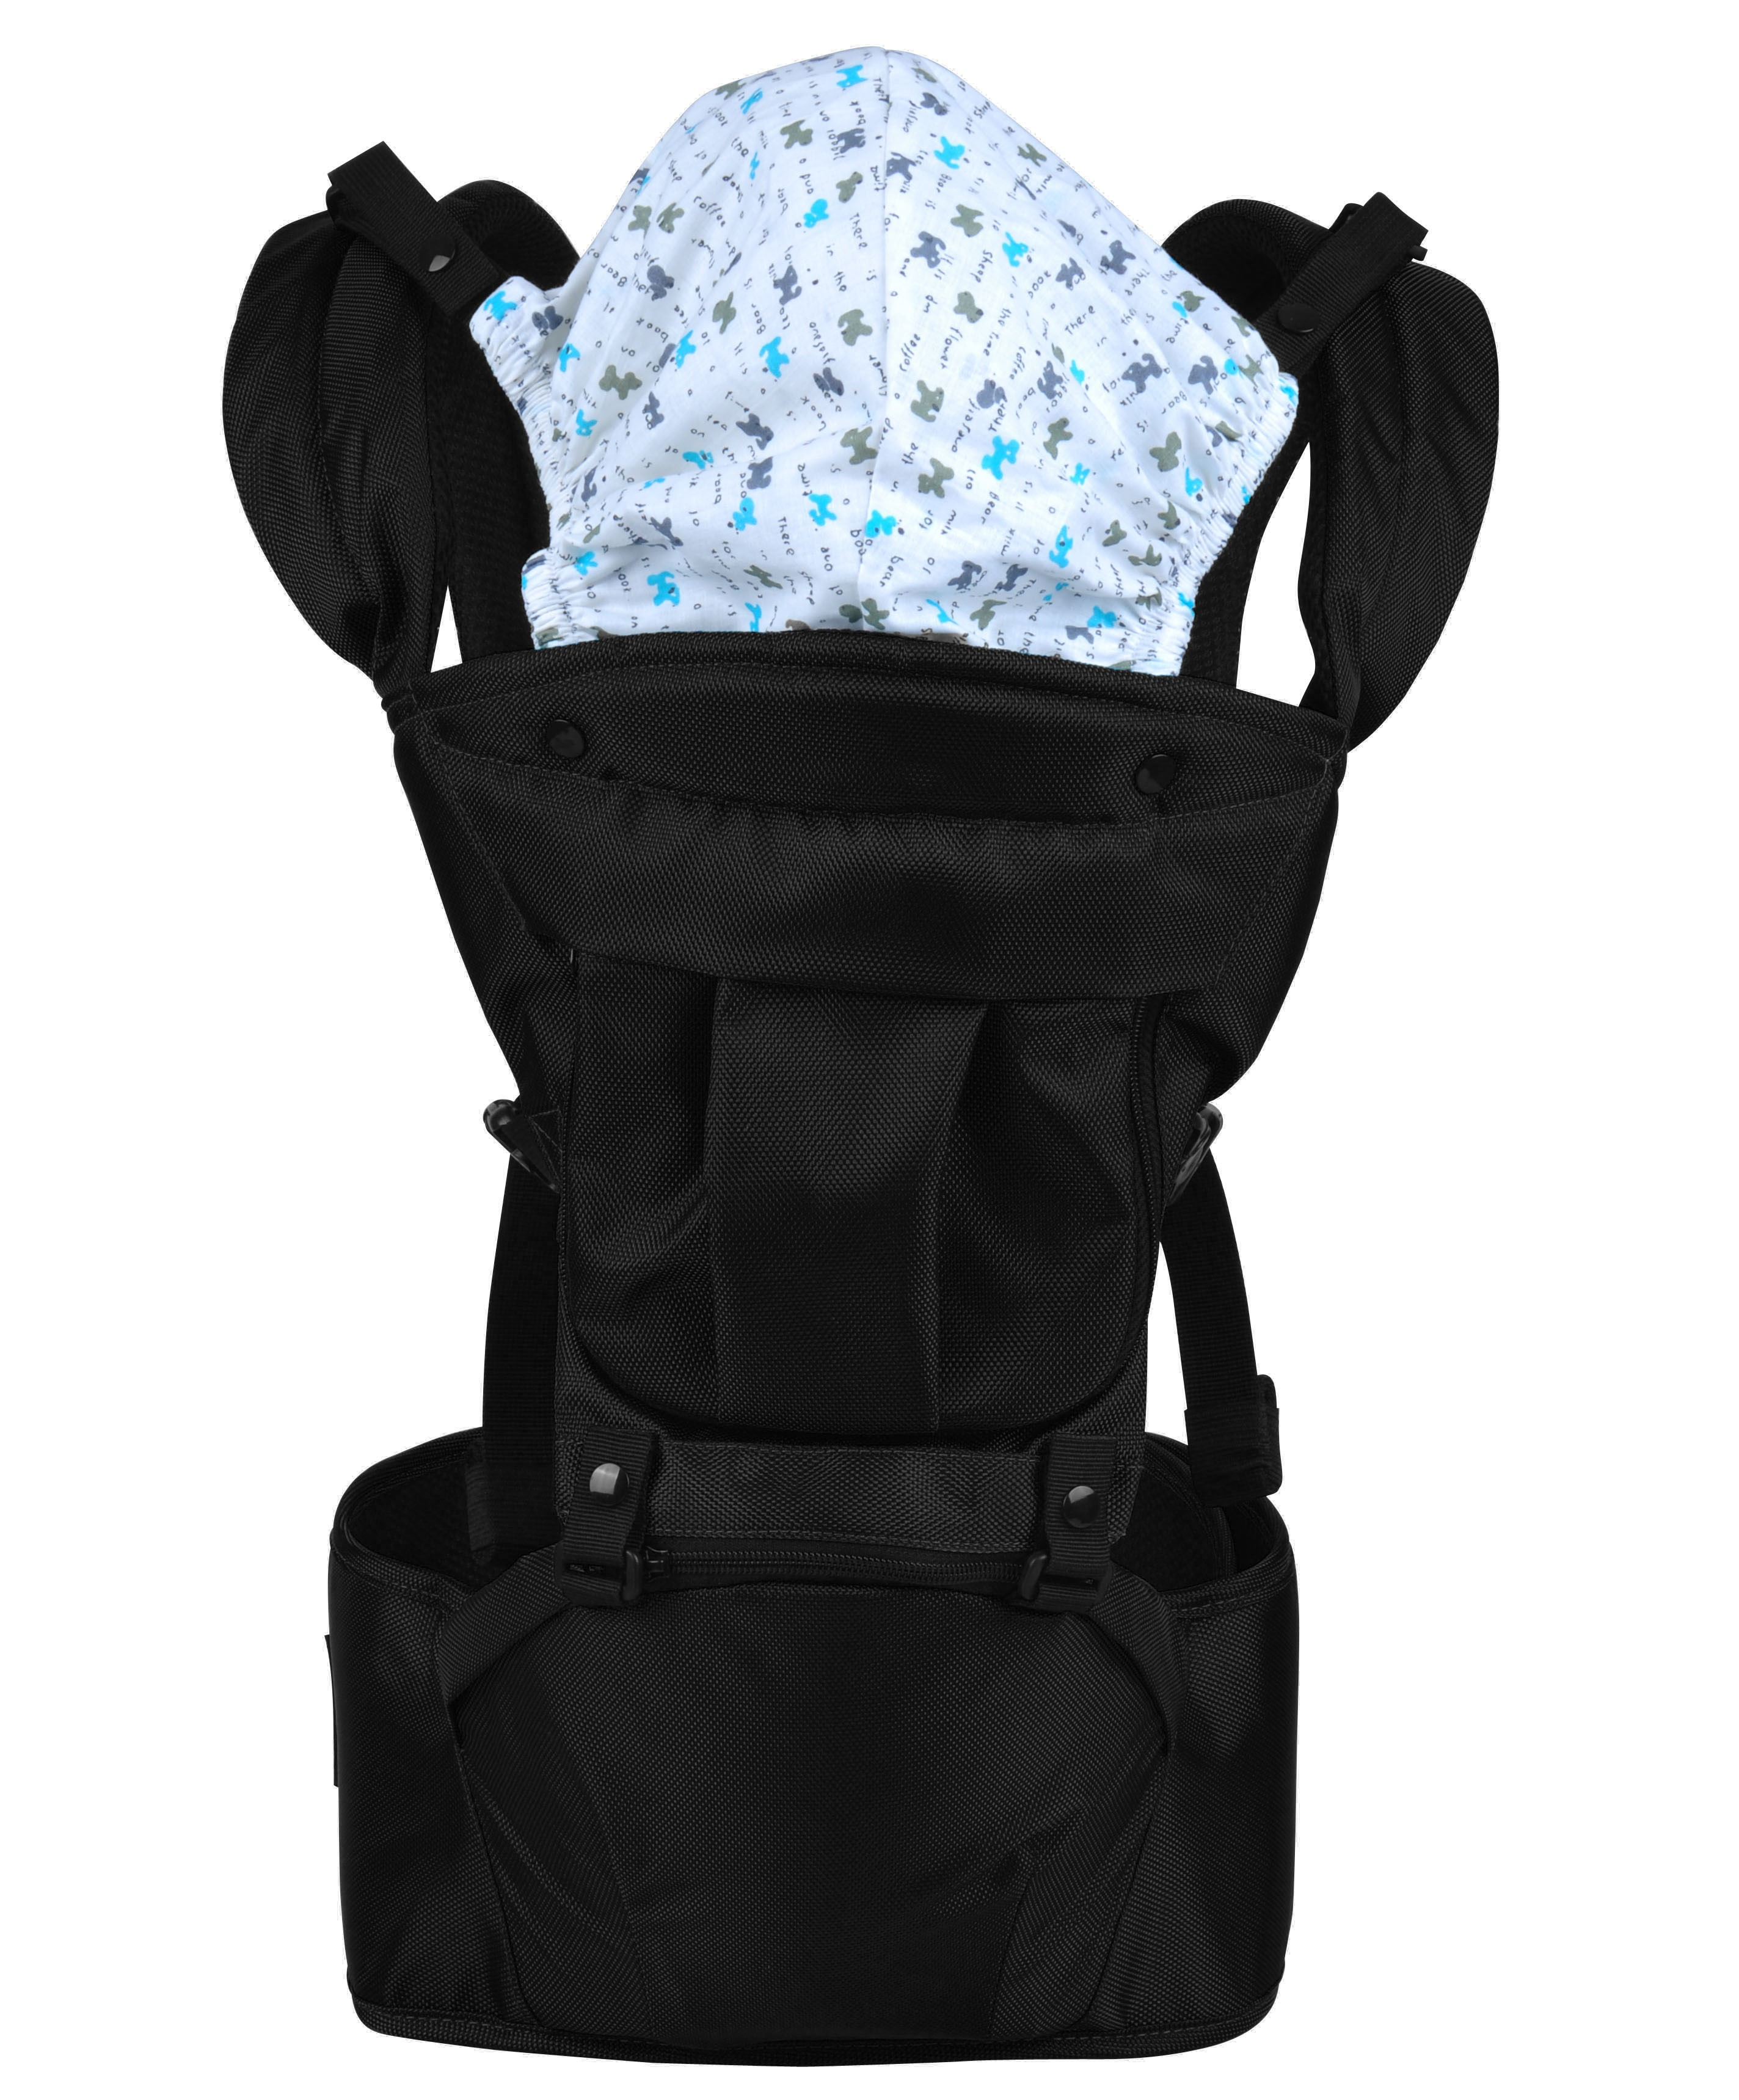 New arrival 핫 세일 black baby carrier